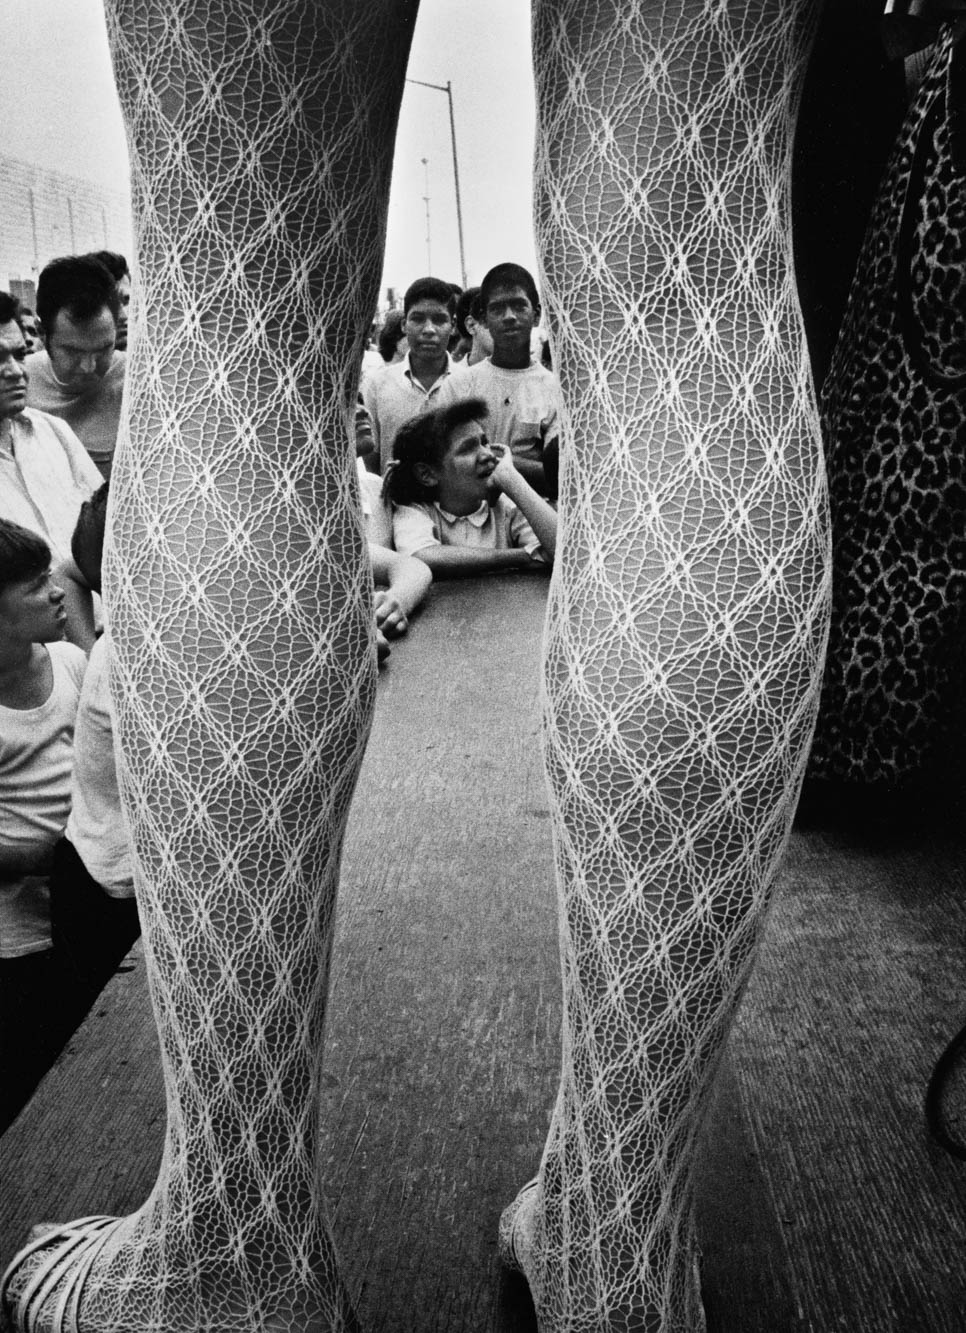 Copy of Lacy Legs (Coney Island, New York), 1969